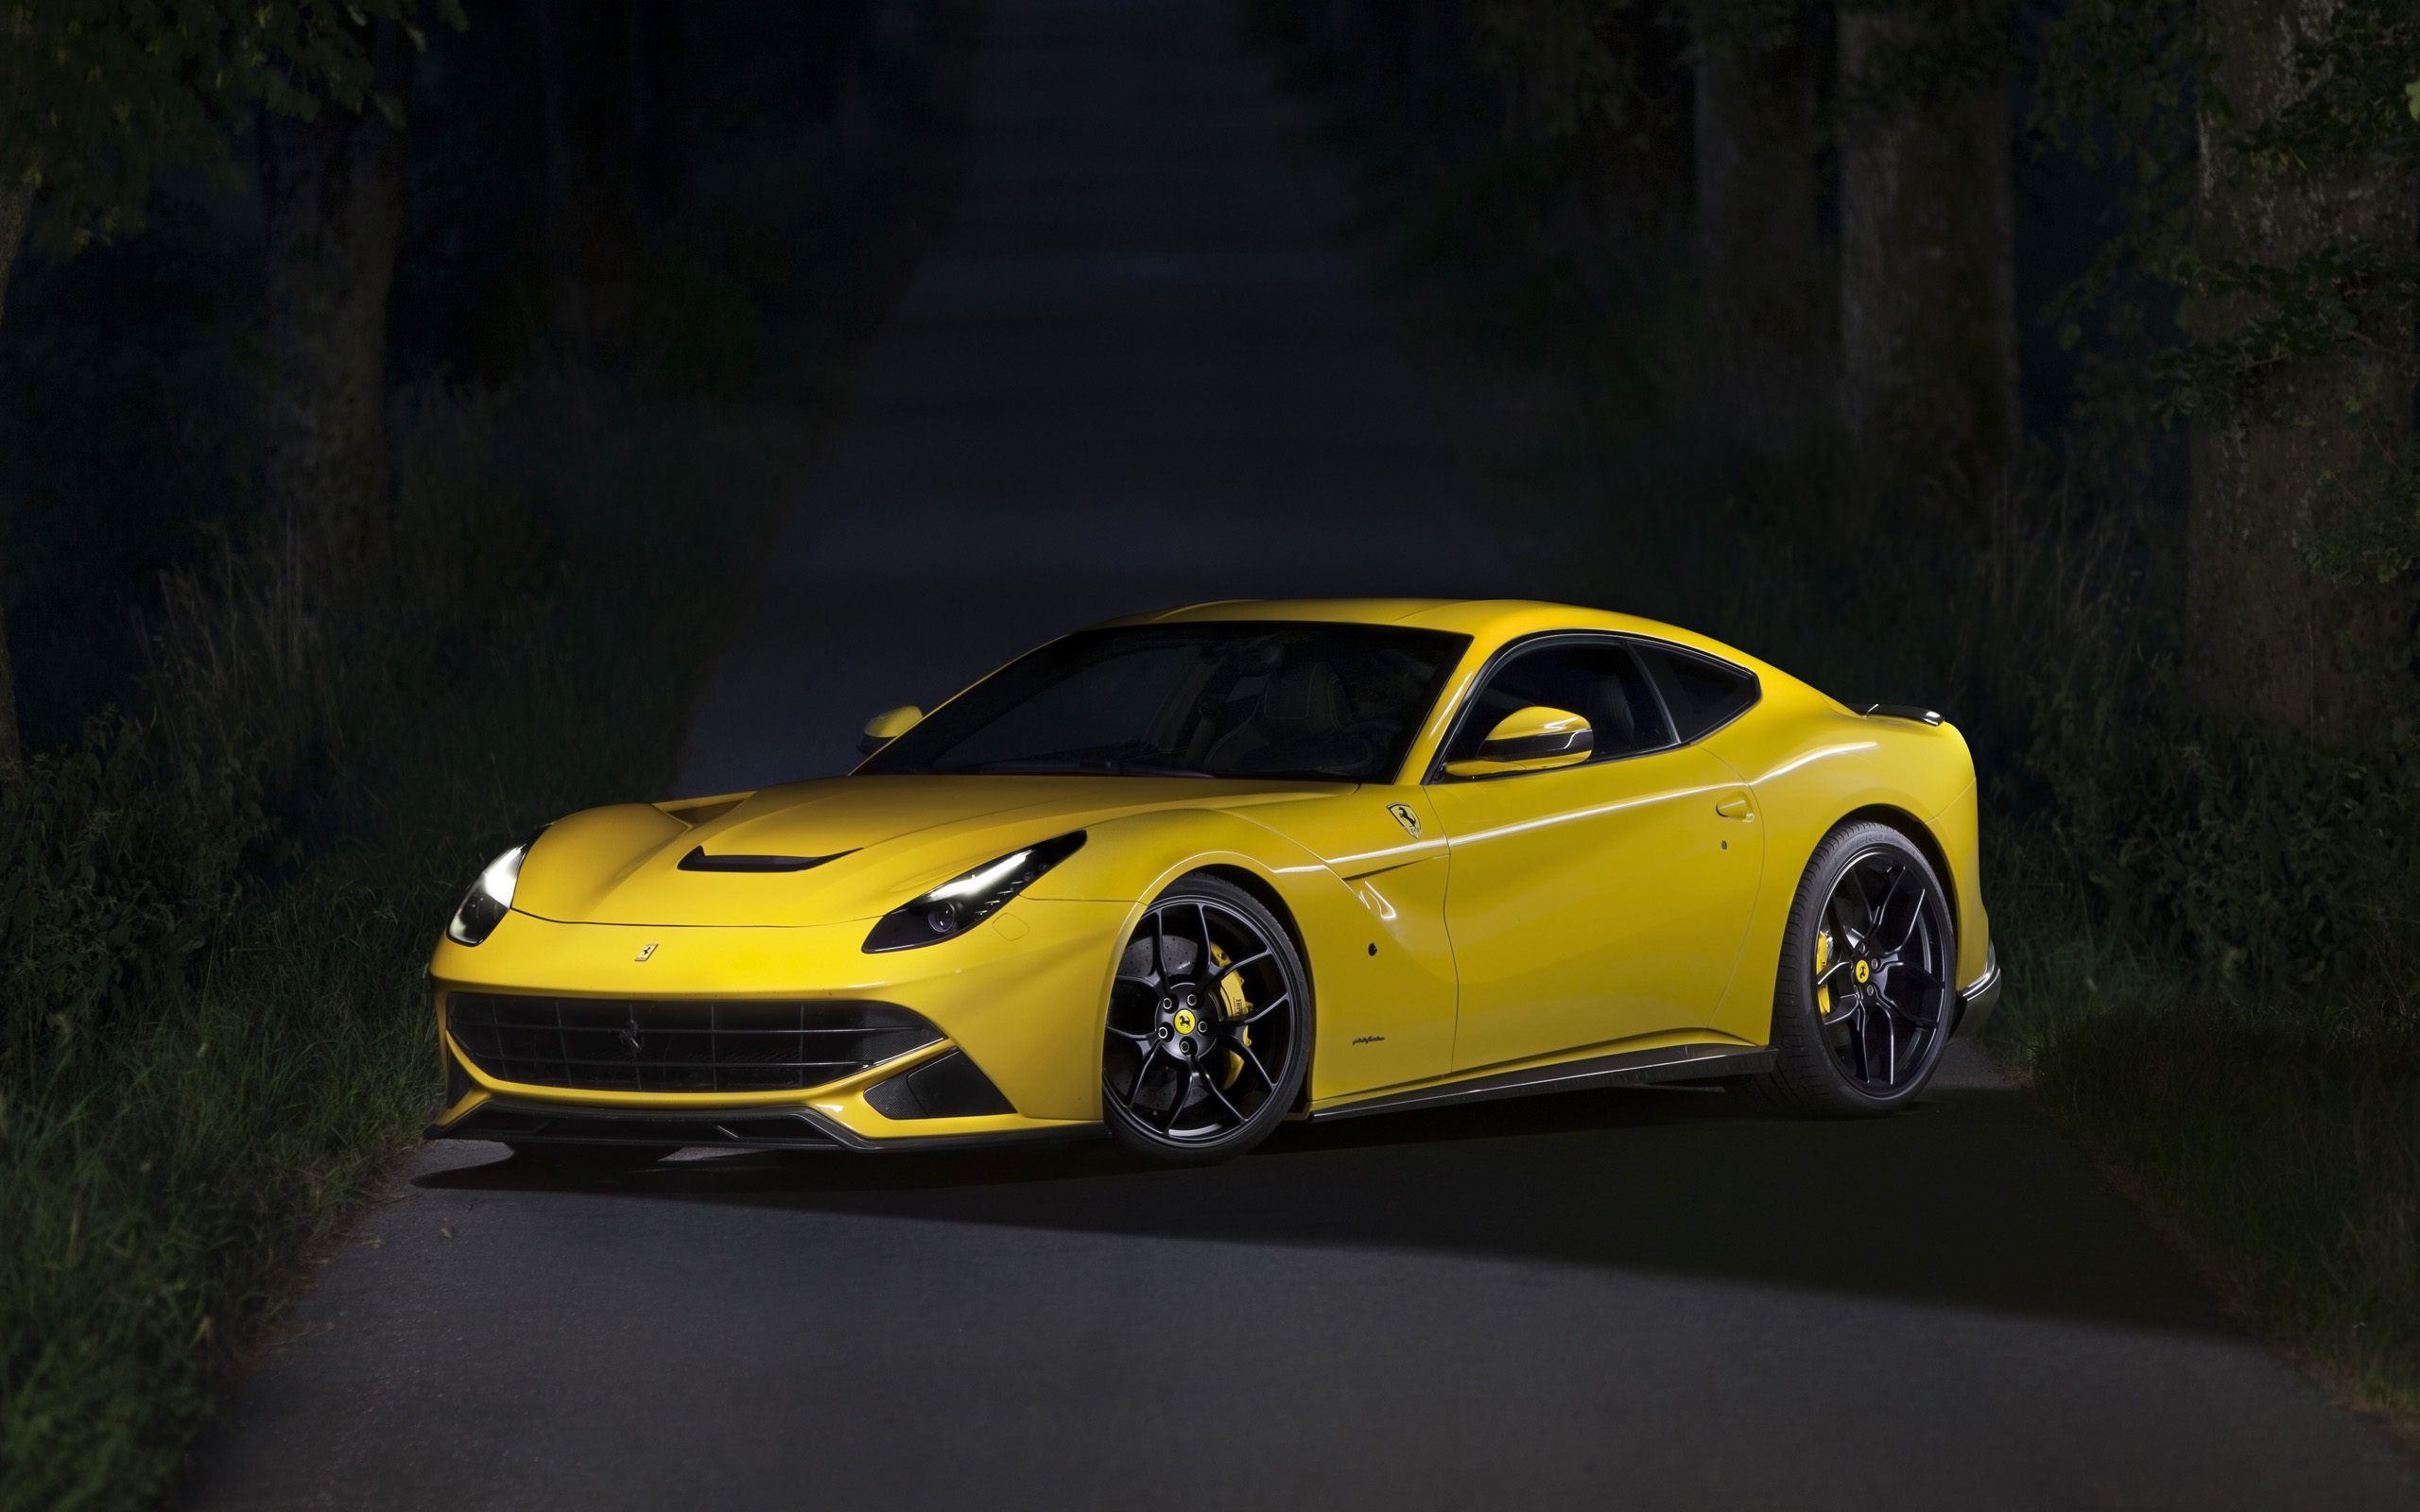 4k Black Car Wallpaper Novitec Rosso Ferrari F12berlinetta Wallpaper Hd Car